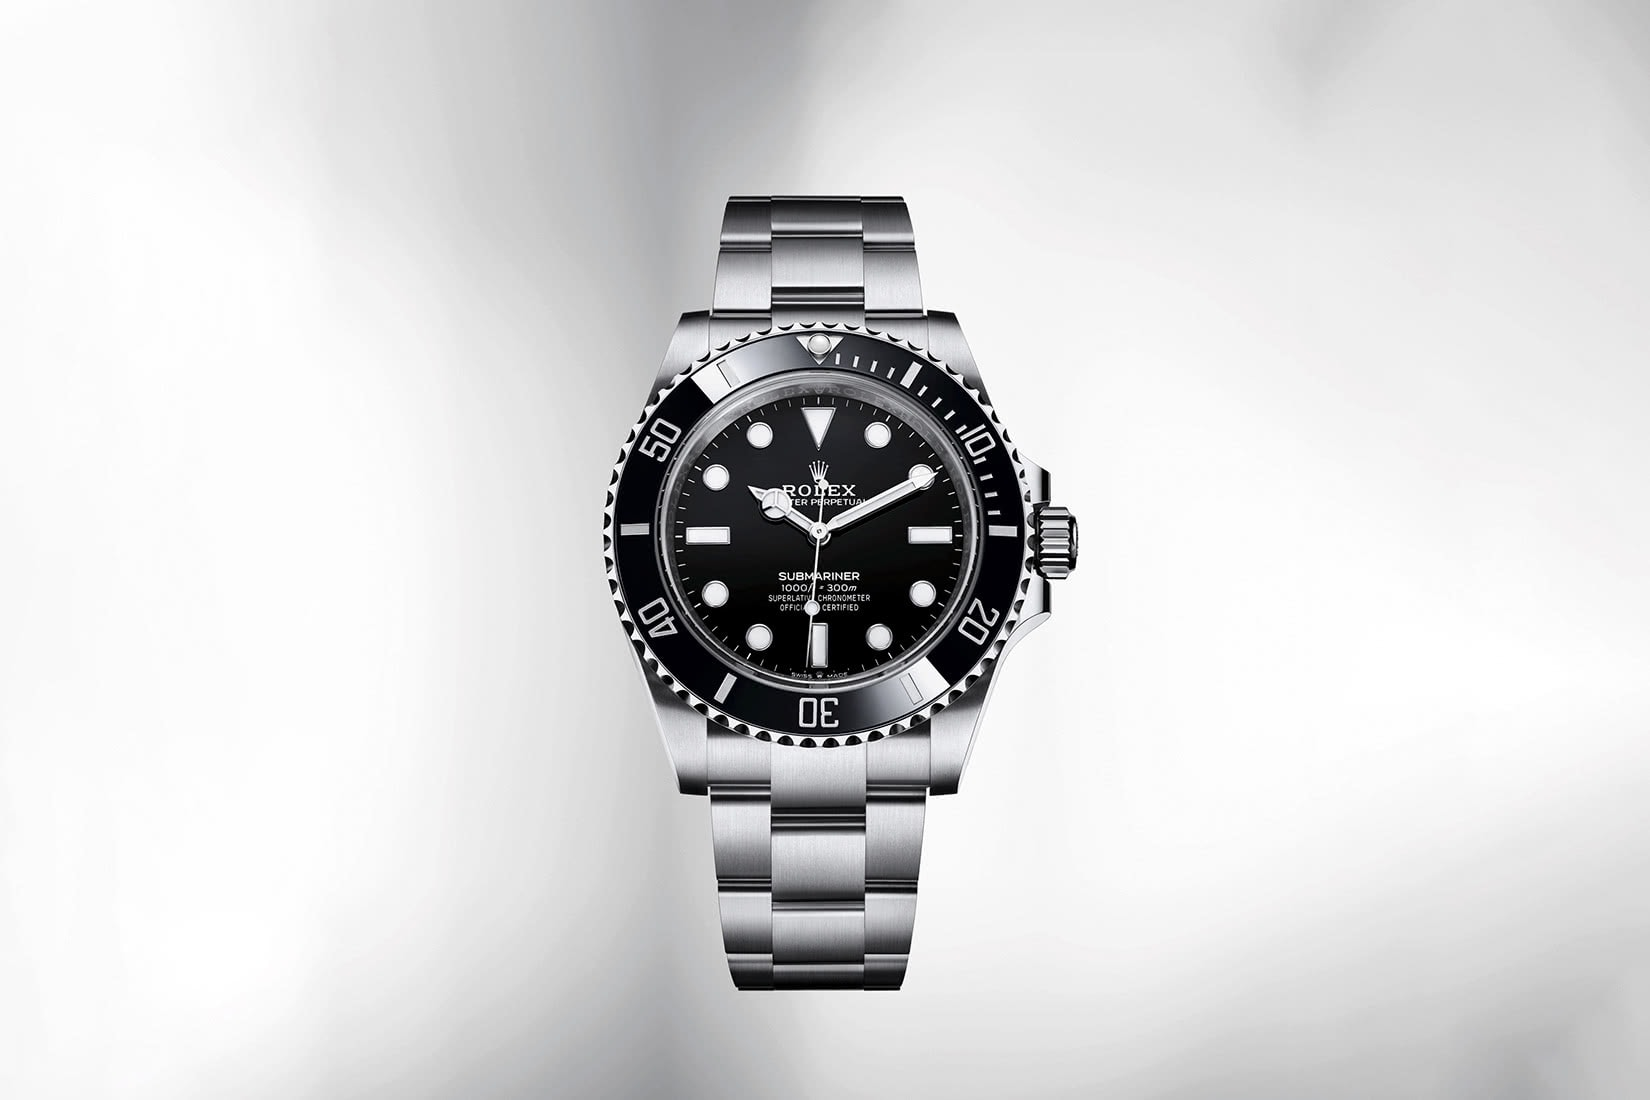 eBay luxury watch authenticity guarantee Rolex Submariner review - Luxe Digital